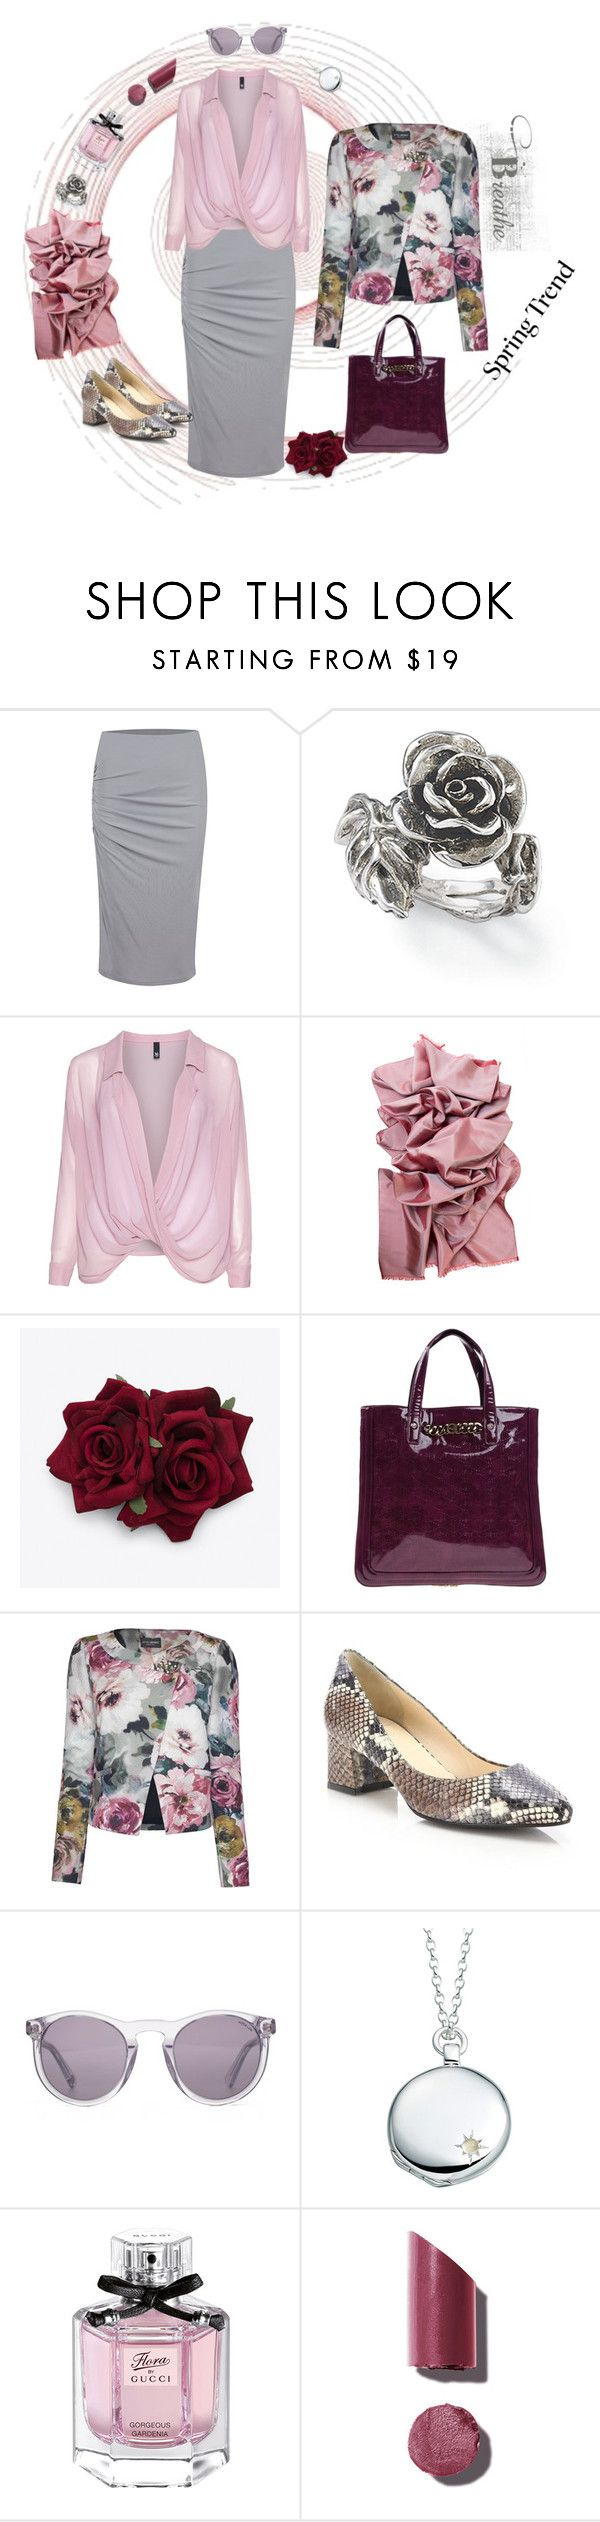 """""""Spring Trend"""" by lence-59 ❤ liked on Polyvore featuring Design Element, Natures Jewelry, Manon Baptiste, Blugirl, James Lakeland, Aquatalia by Marvin K., HOOK LDN, Astley Clarke, Gucci and Chanel"""